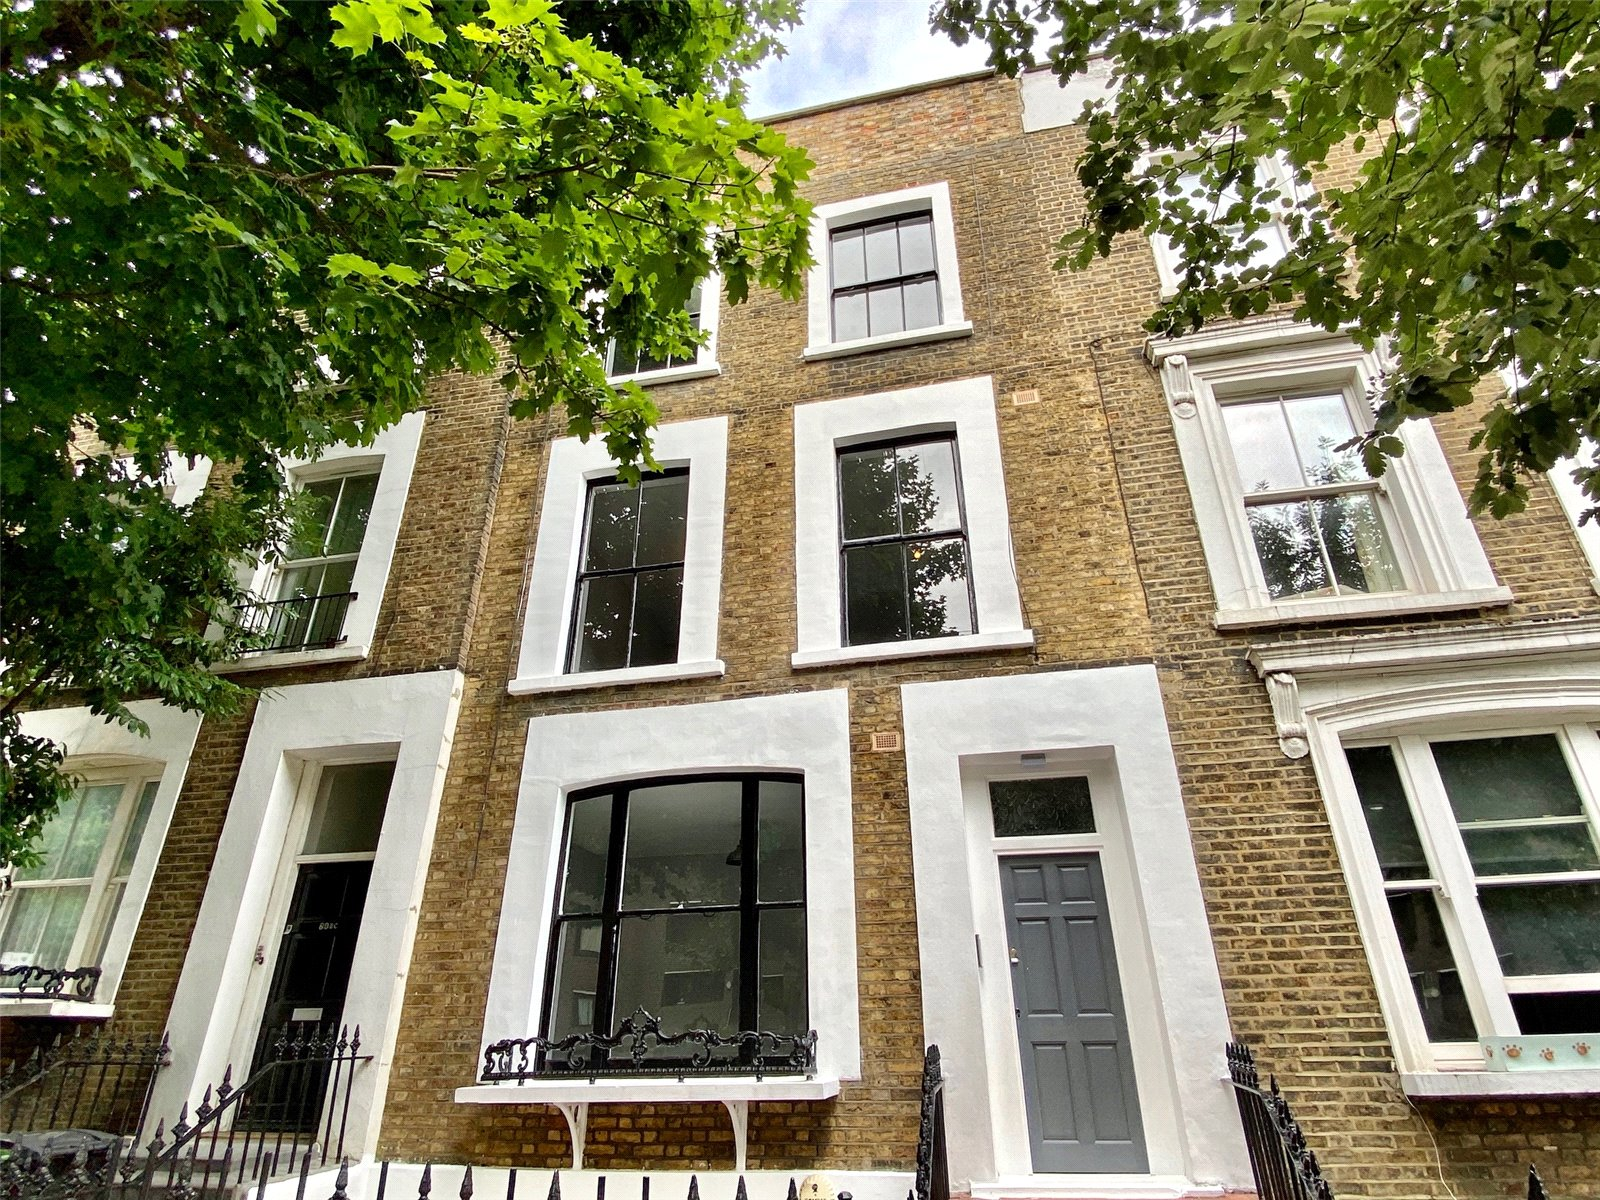 3 bed apartment for sale in Kentish Town, NW5 4DA 6